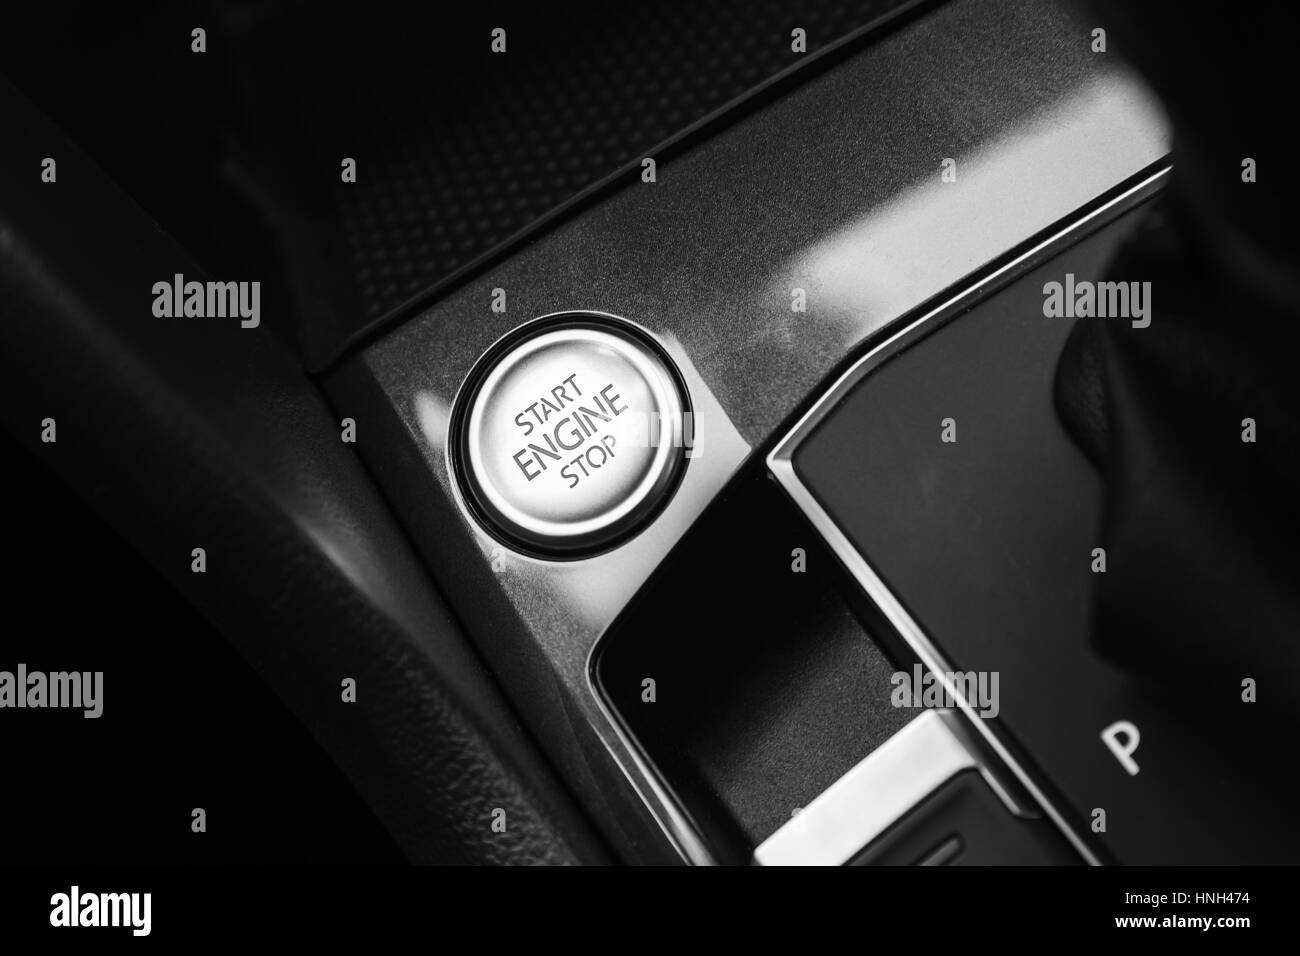 modern luxury car interior detail engine start stop button stock photo royalty free image. Black Bedroom Furniture Sets. Home Design Ideas